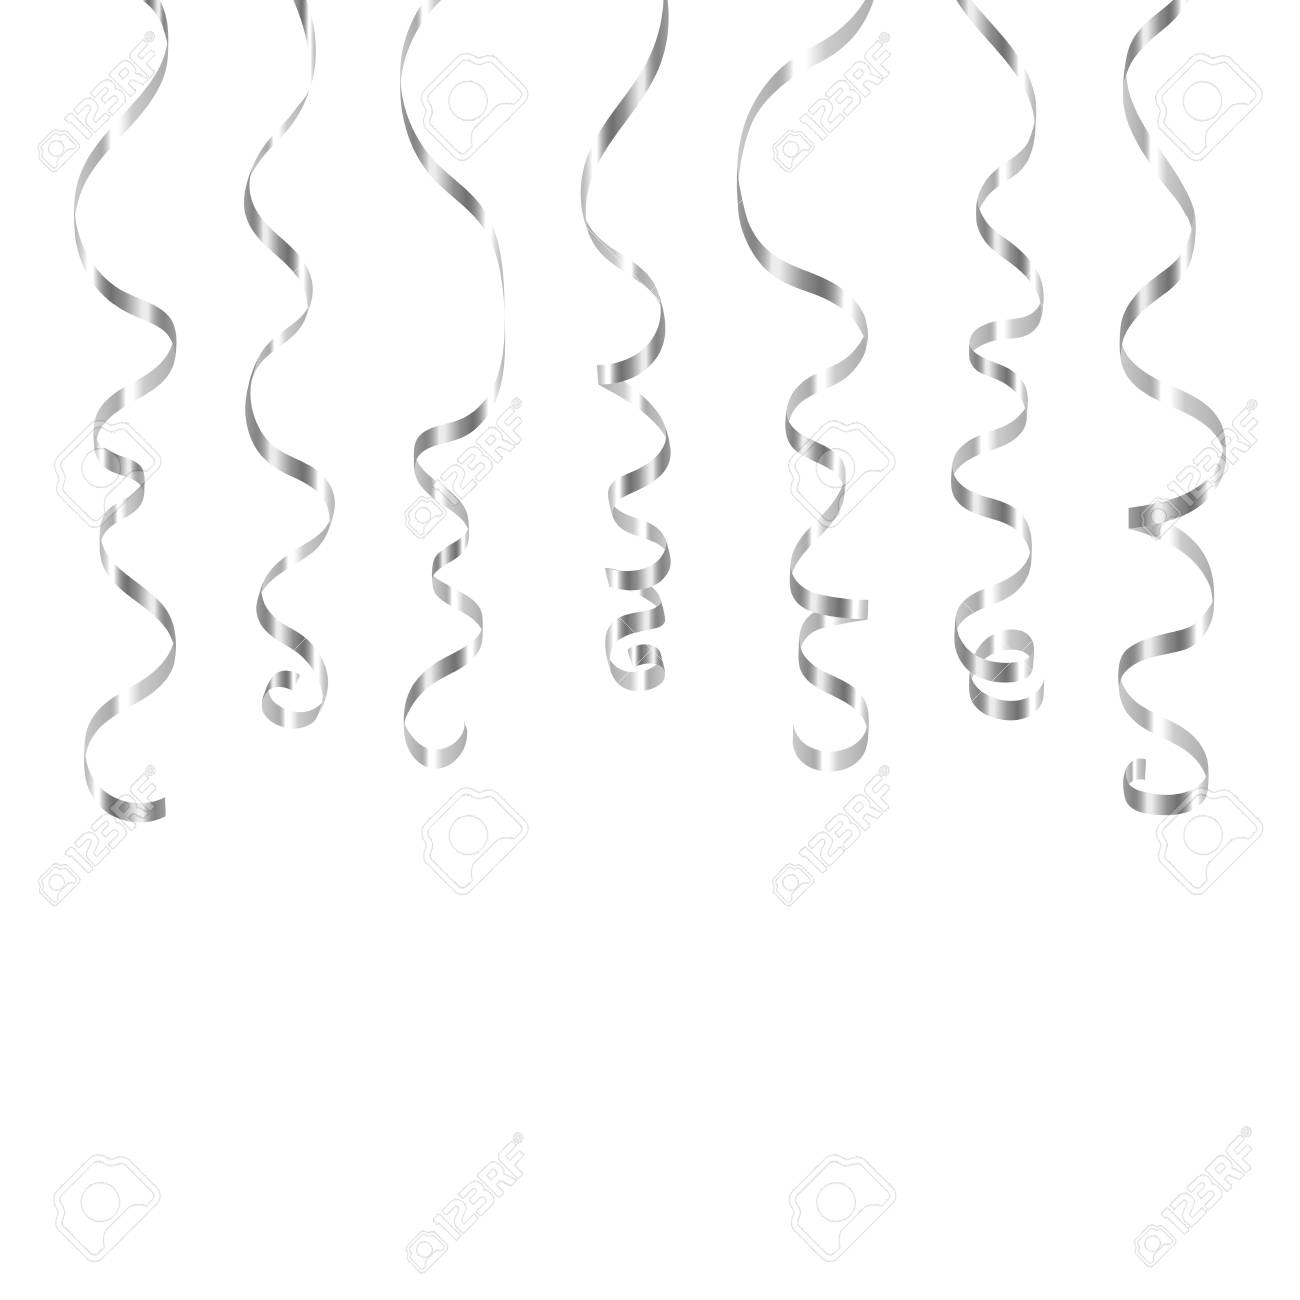 Cliparts x making the. Streamers clipart silver